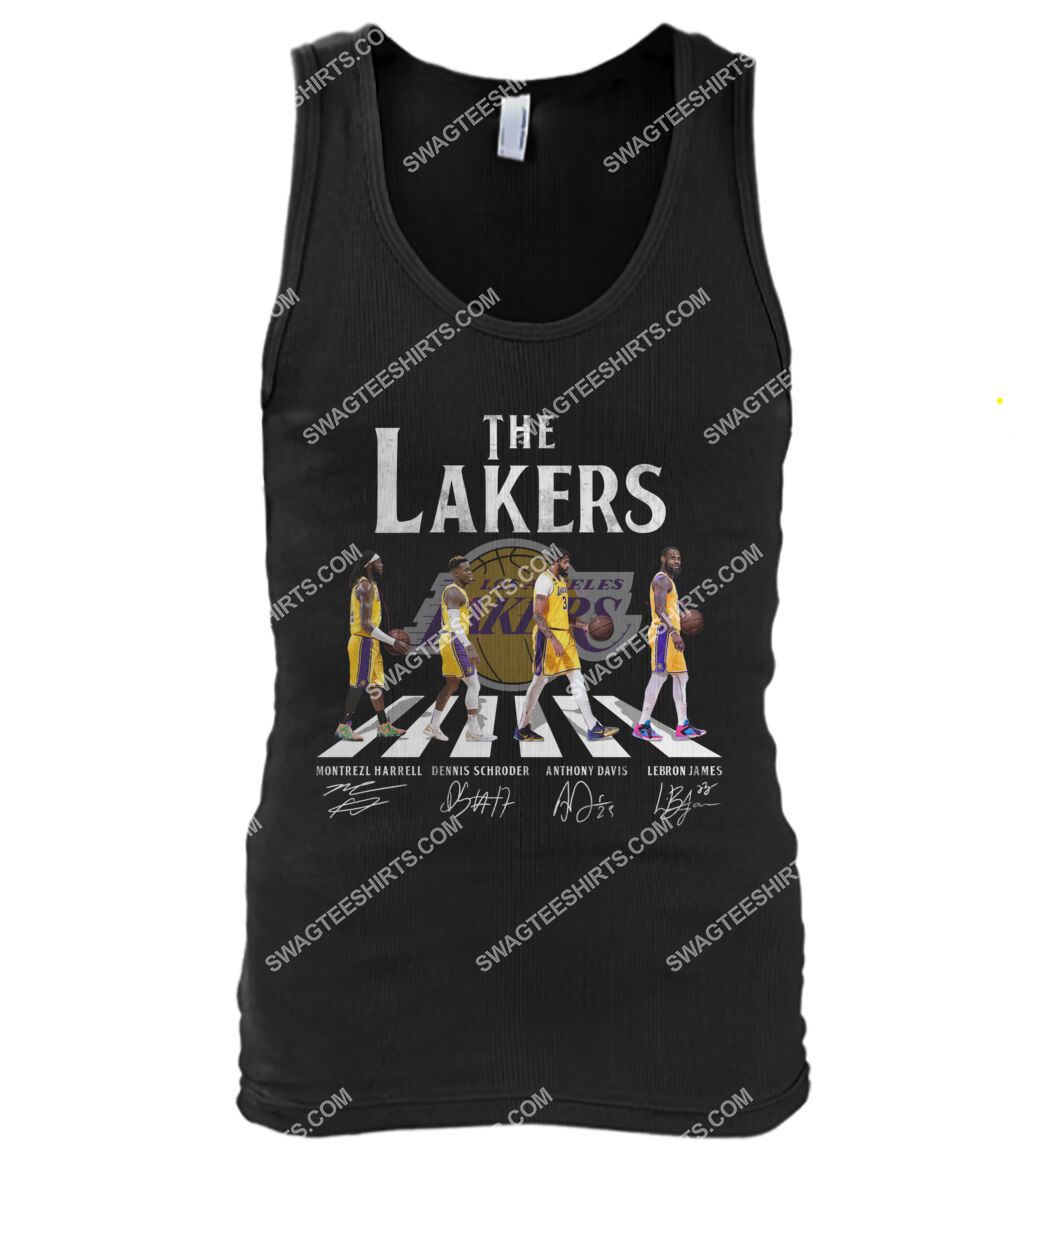 the los angeles lakers walking abbey road tank top 1